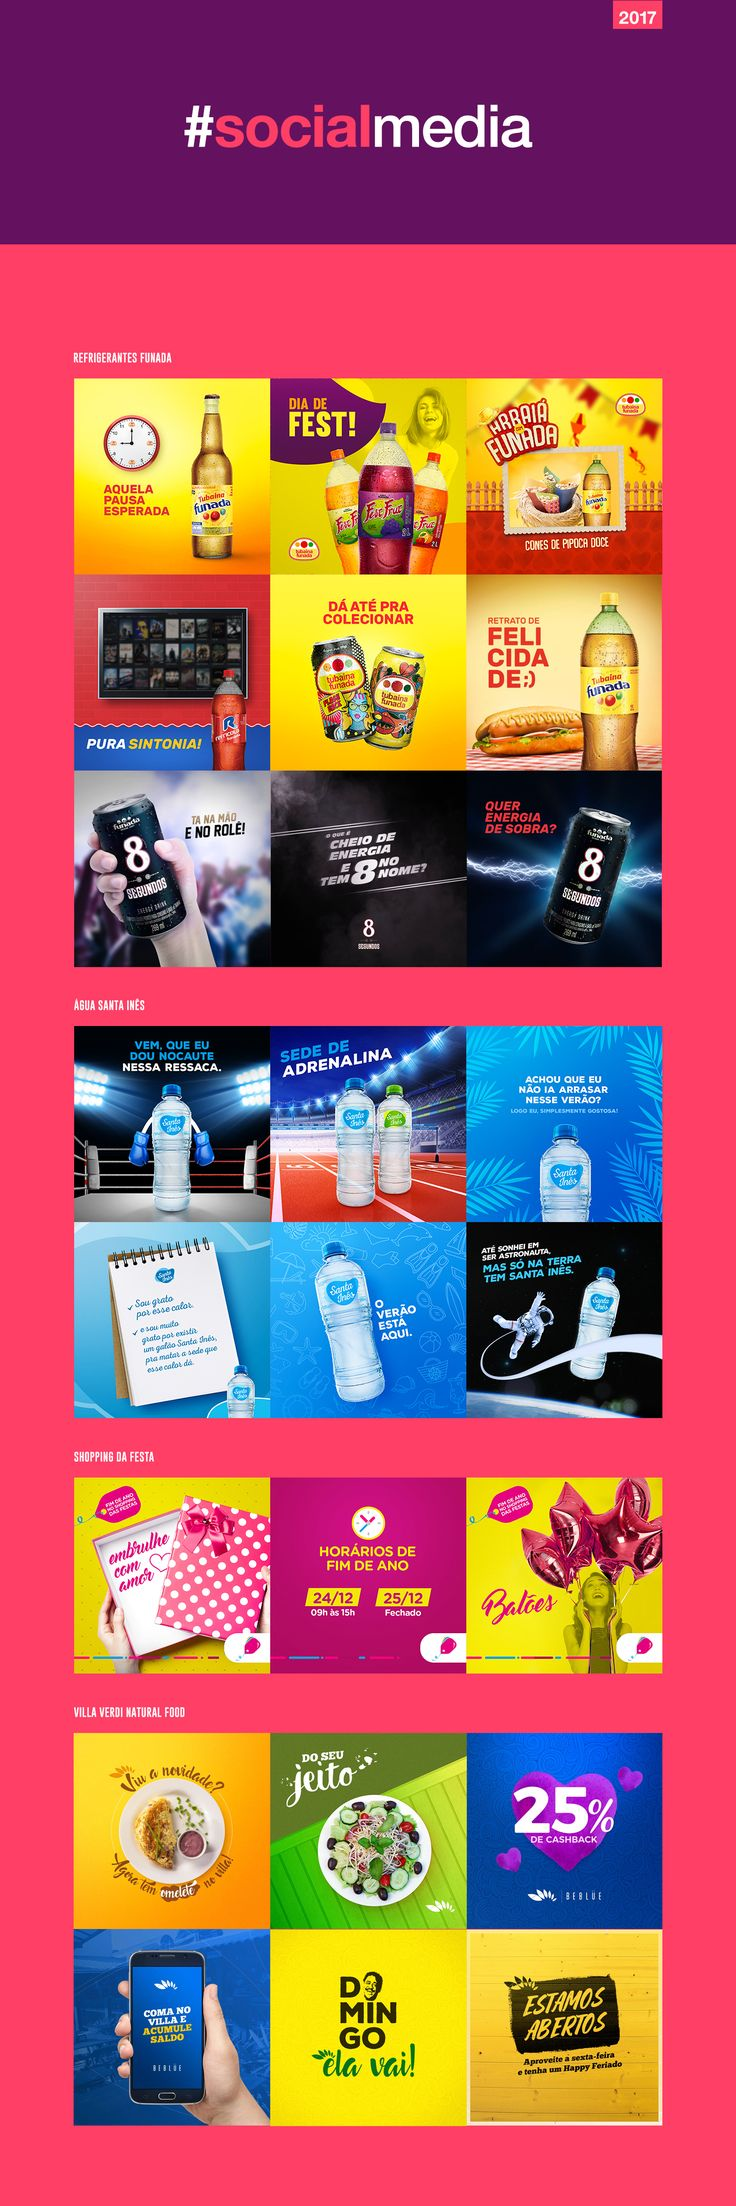 Social Media 2017 on Behance - Tap the link to shop on our official online store! You can also join our affiliate and/or rewards programs for FREE!